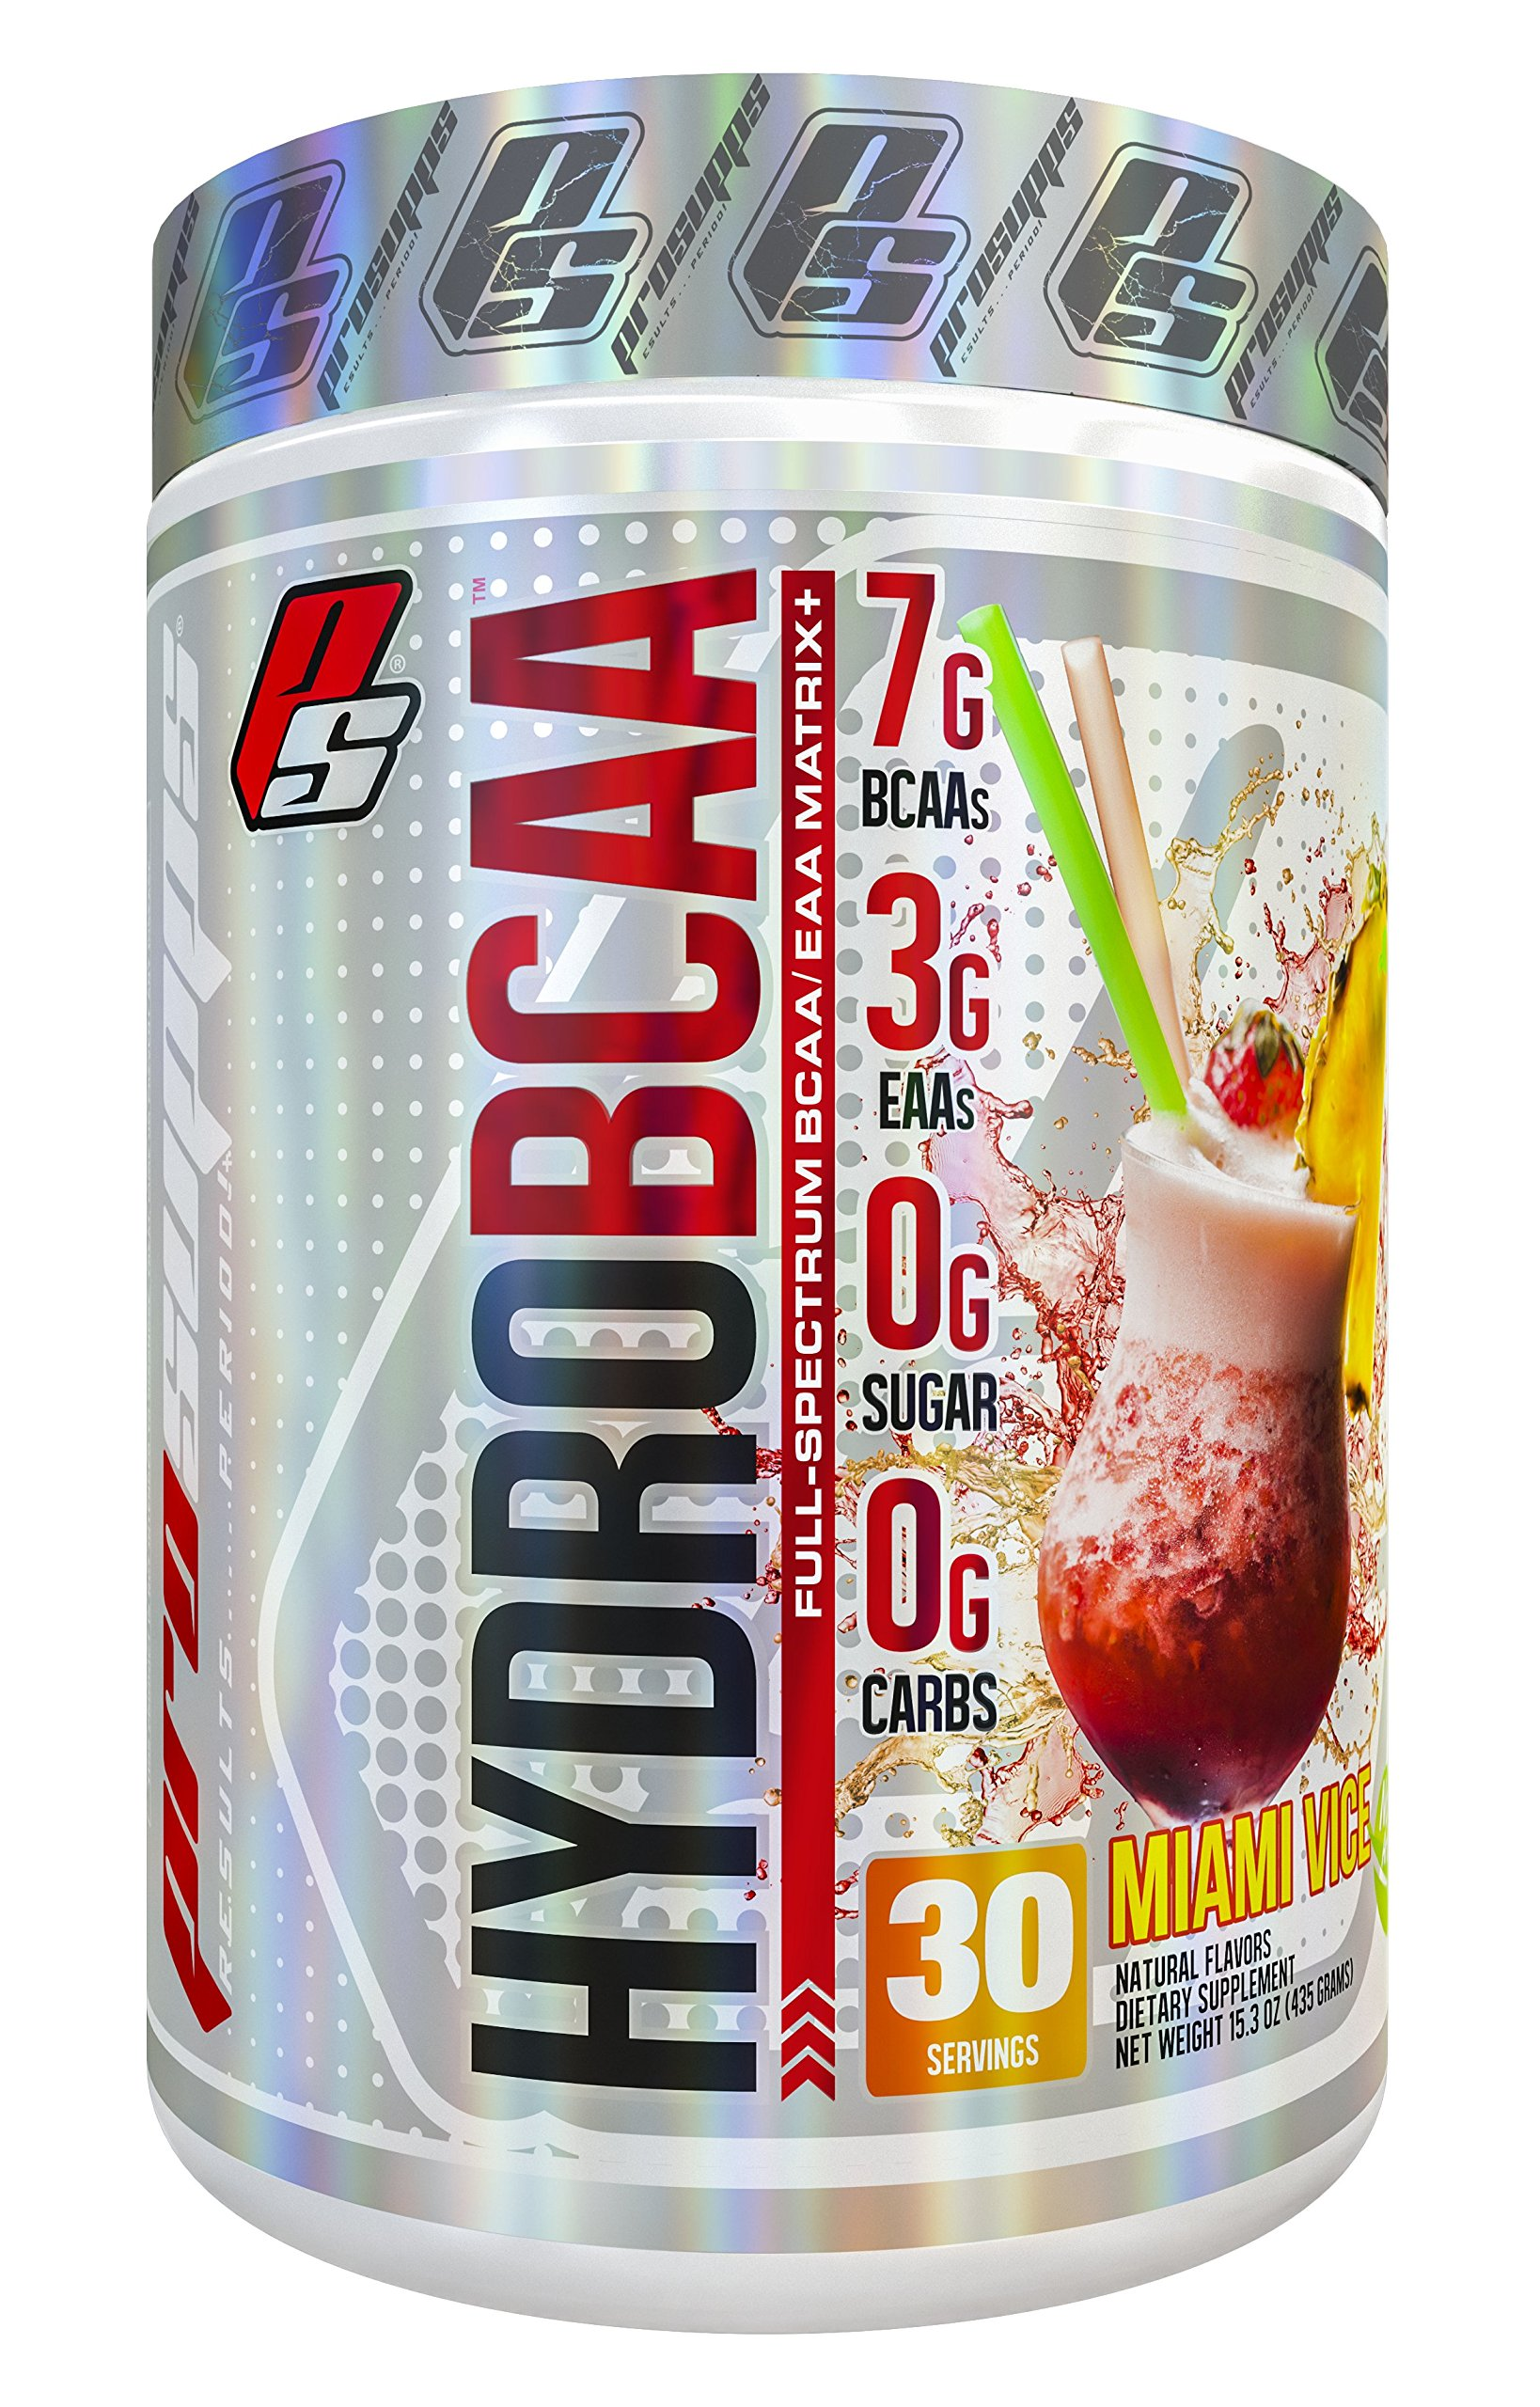 HydroBCAA BCAA/EAA Full Spectrum Matrix, 7g BCAAs, 3g EAAs, 0g Sugar, 0g Ccarbs, 30 servings, 15.3 oz. (Miami Vice Flavor)